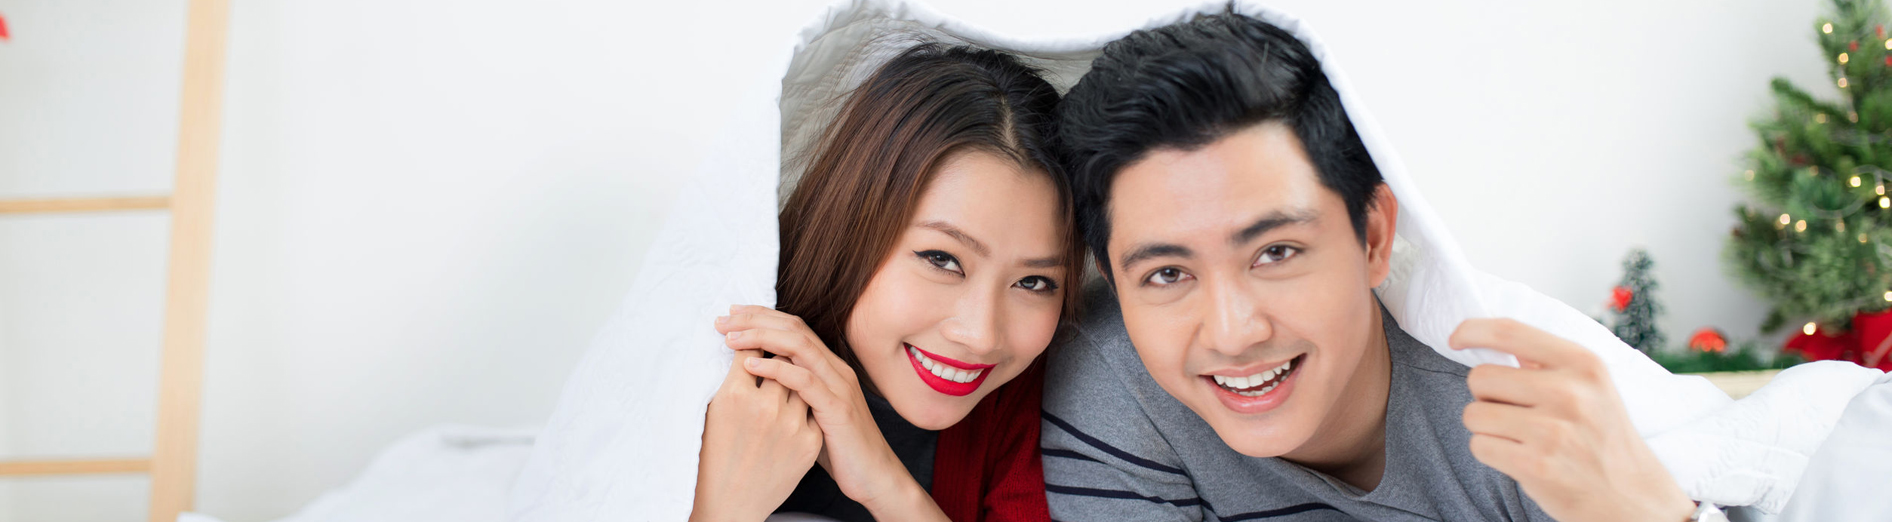 70897896 - christmas. asian couple at home celebrating new year.